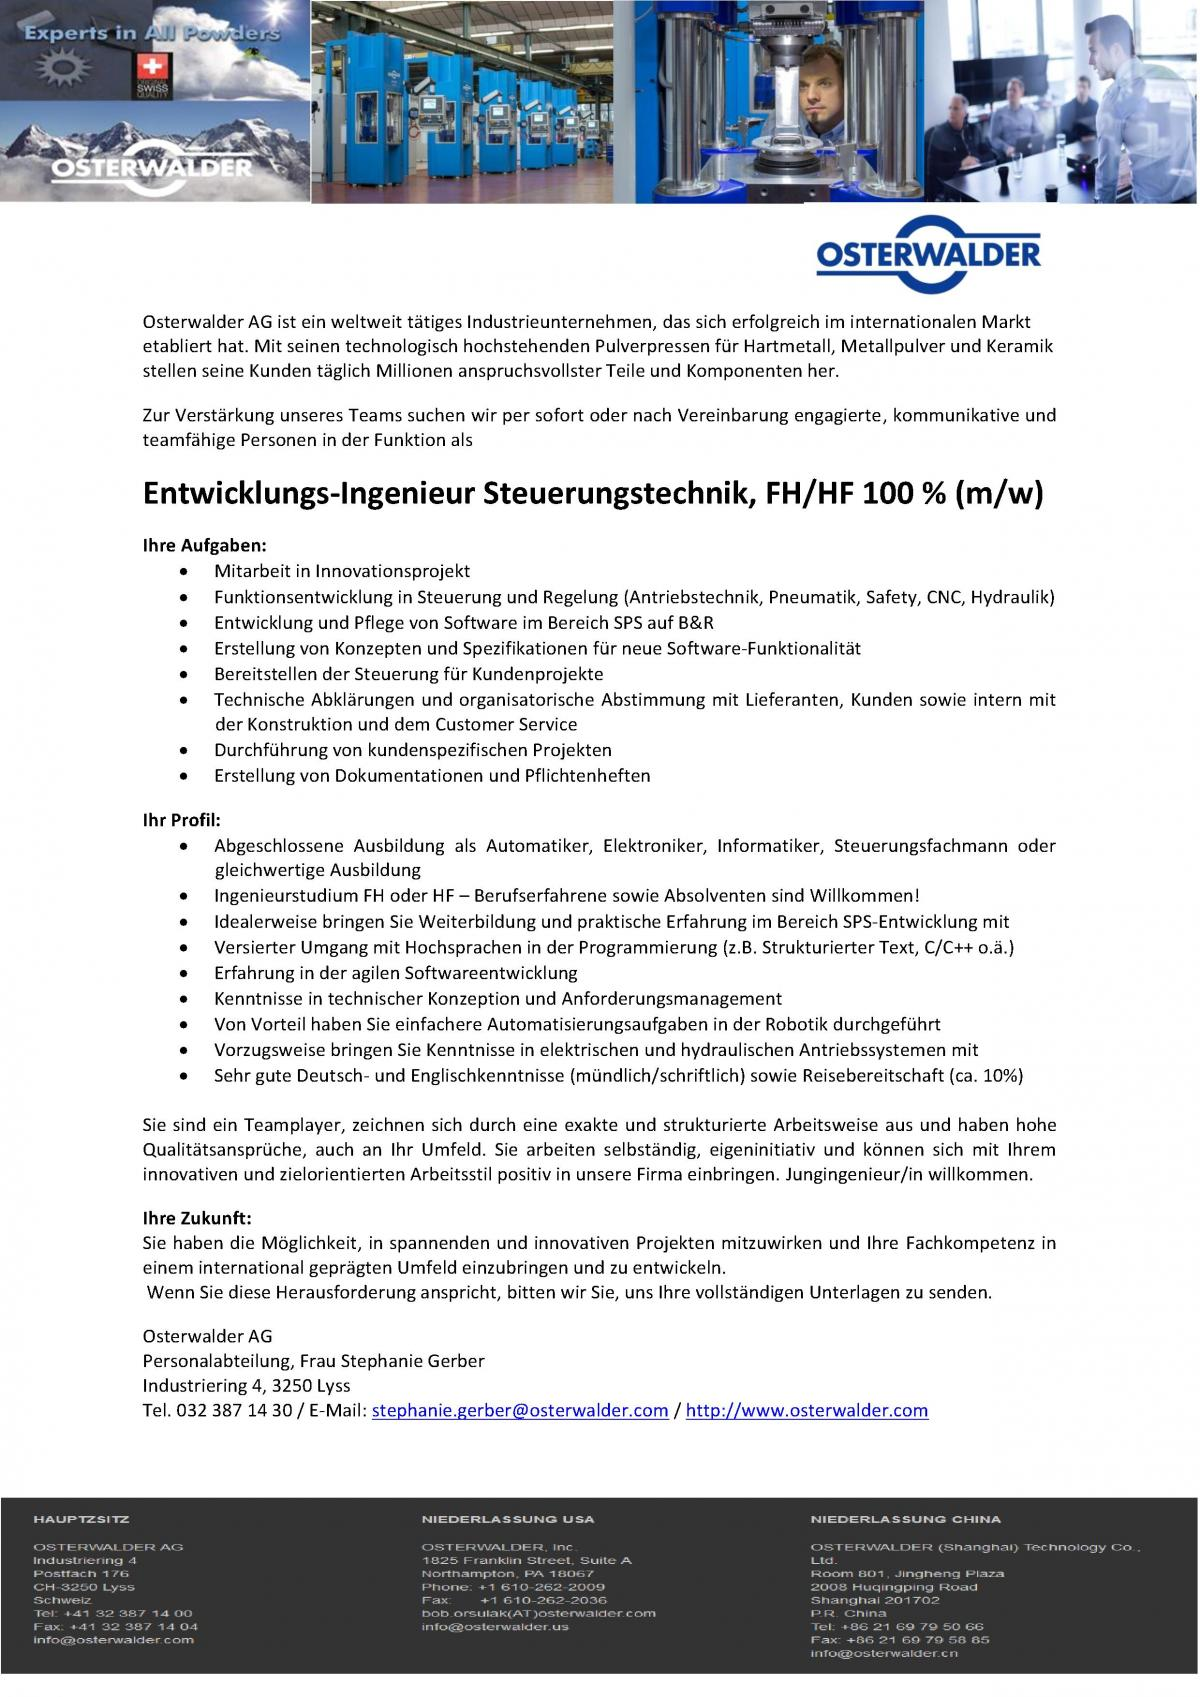 Stellenangebot odec for Ingenieur holztechnik